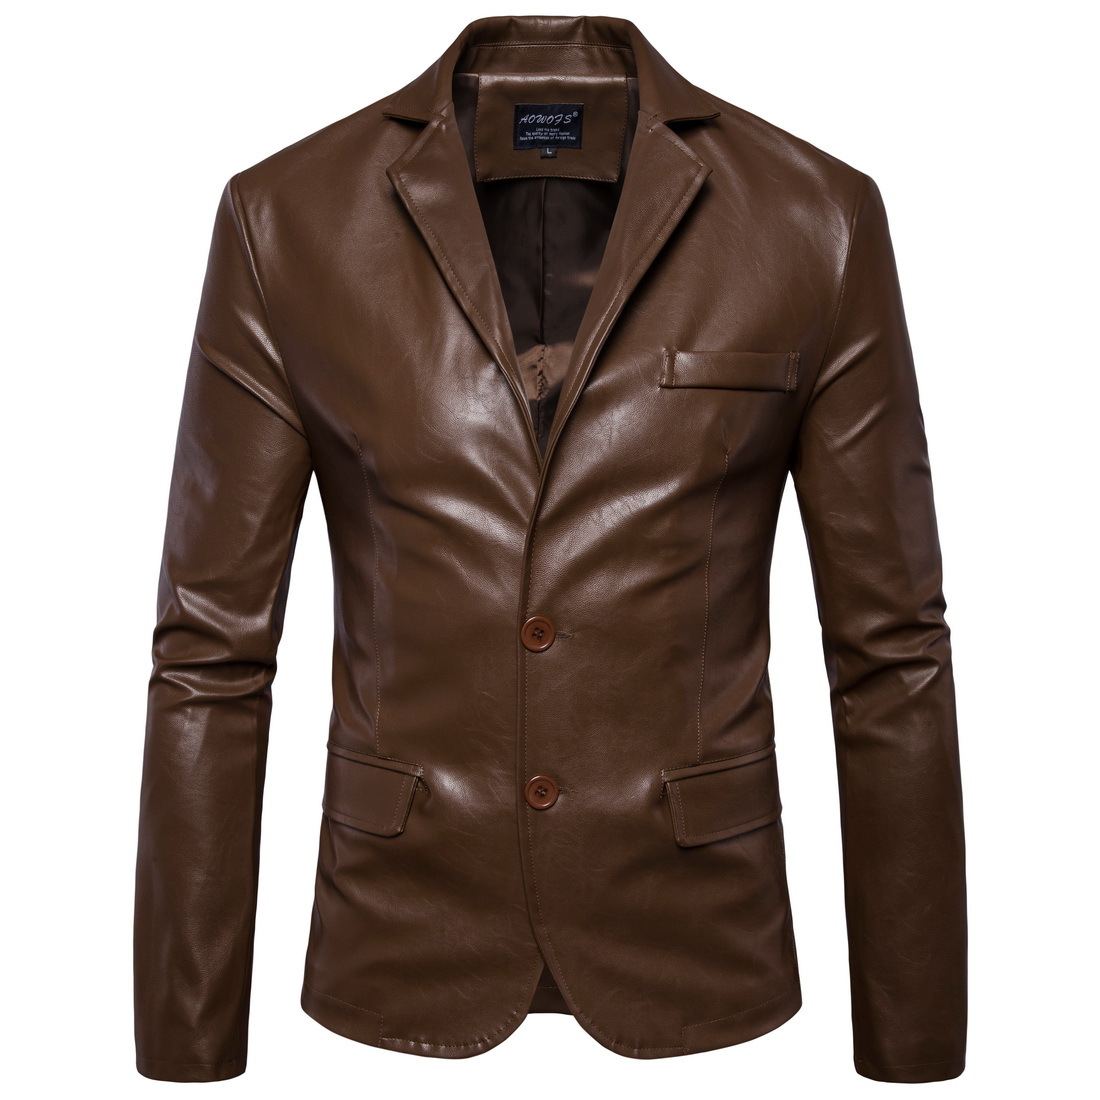 Mens Leather Jacket 2 Button Formal Dress Suits Fashion Man Blazers Black Dark Brown Solid Motorcycle Coat Suede Jacket Male